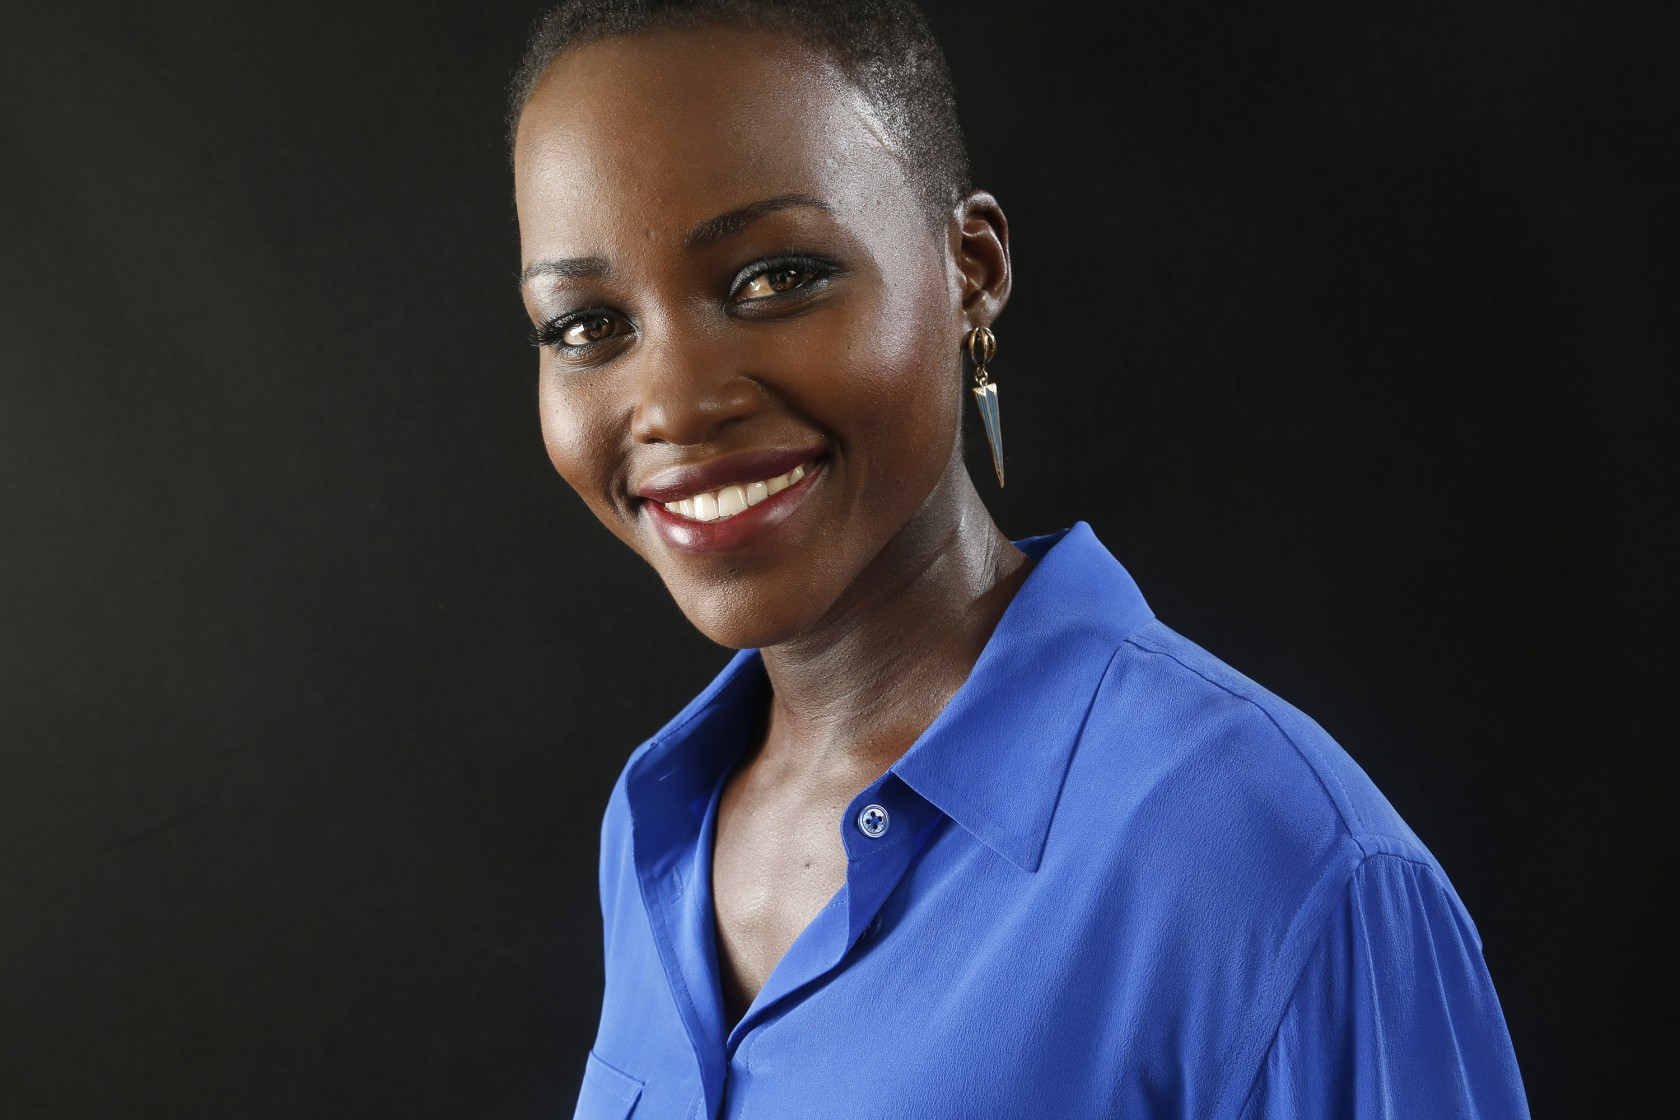 Actress Lupita Nyong'o of the movie 12 YEARS A SLAVE, was photographed at Shutters on the